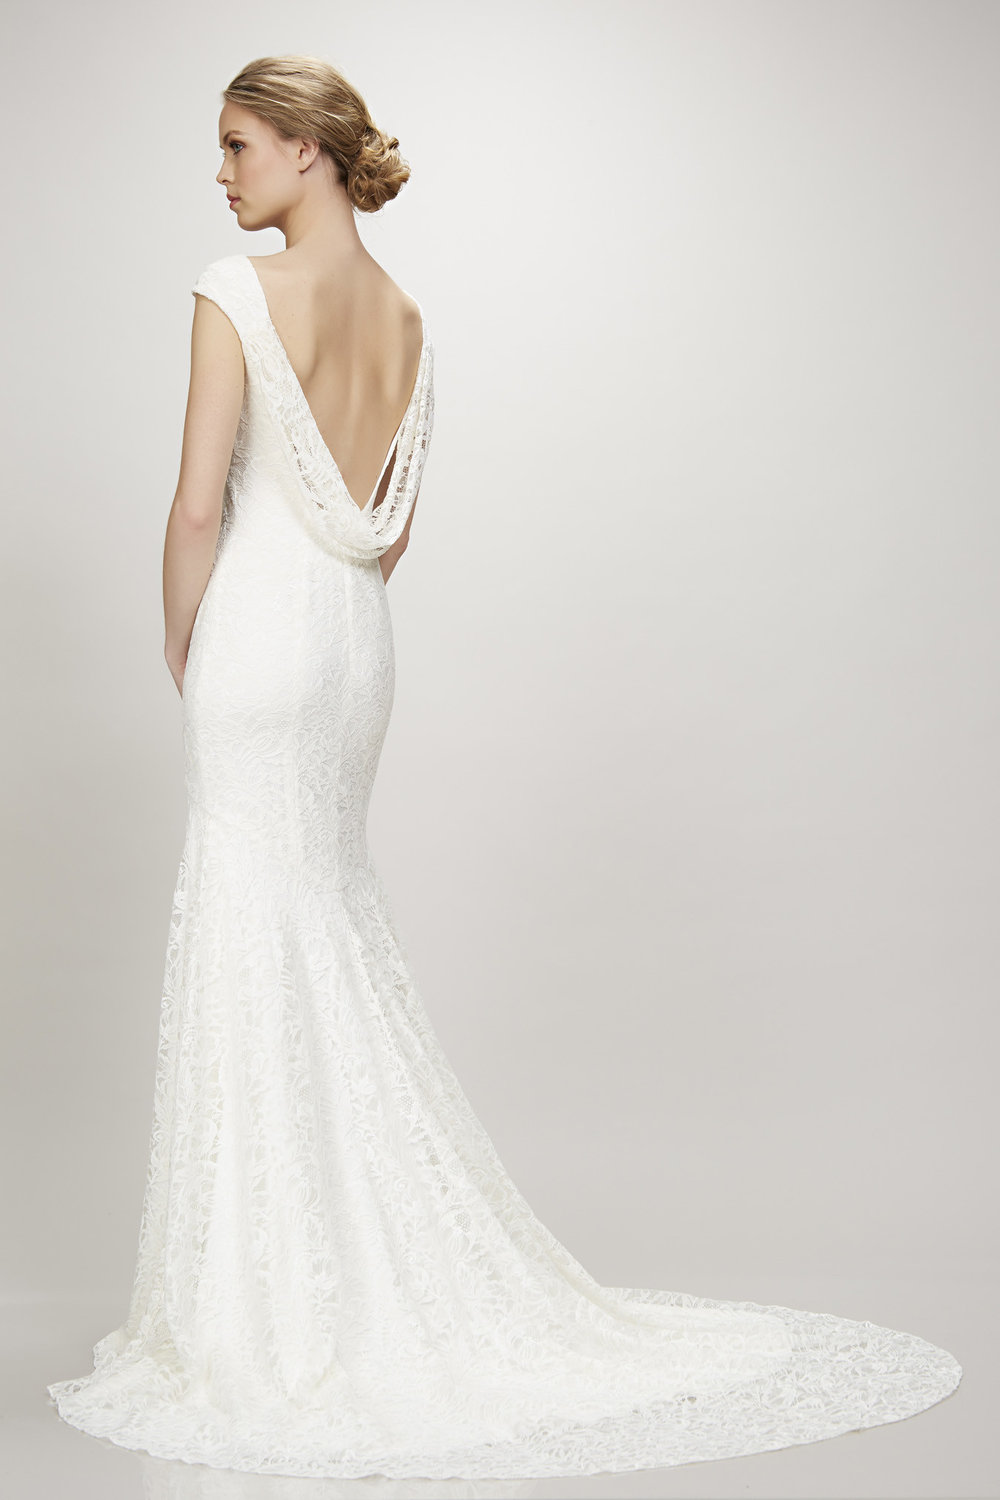 Lace Theia wedding dress from The Bridal Finery